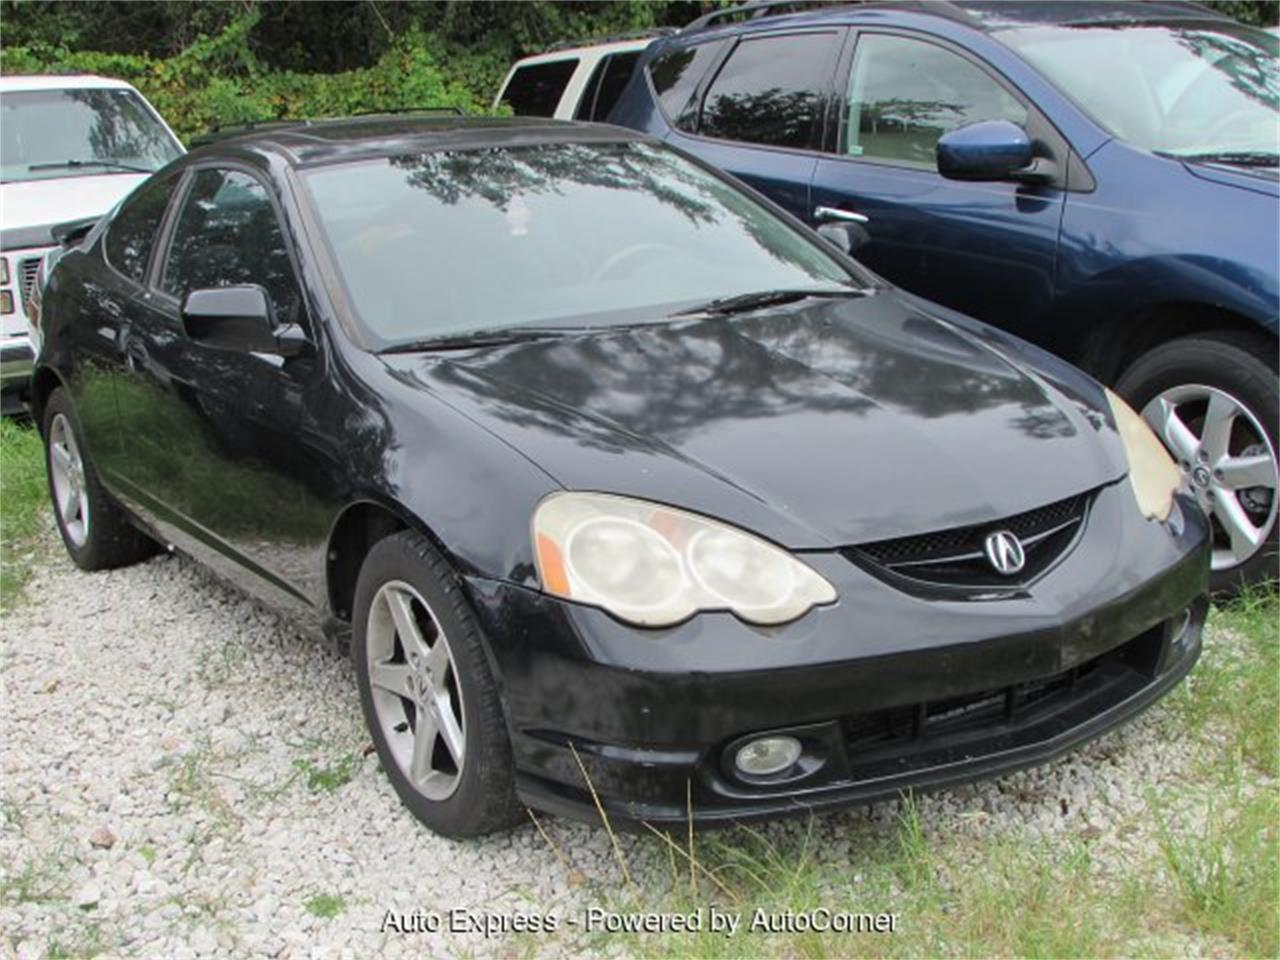 Acura Rsx For Sale >> 2004 Acura Rsx For Sale Classiccars Com Cc 1149157